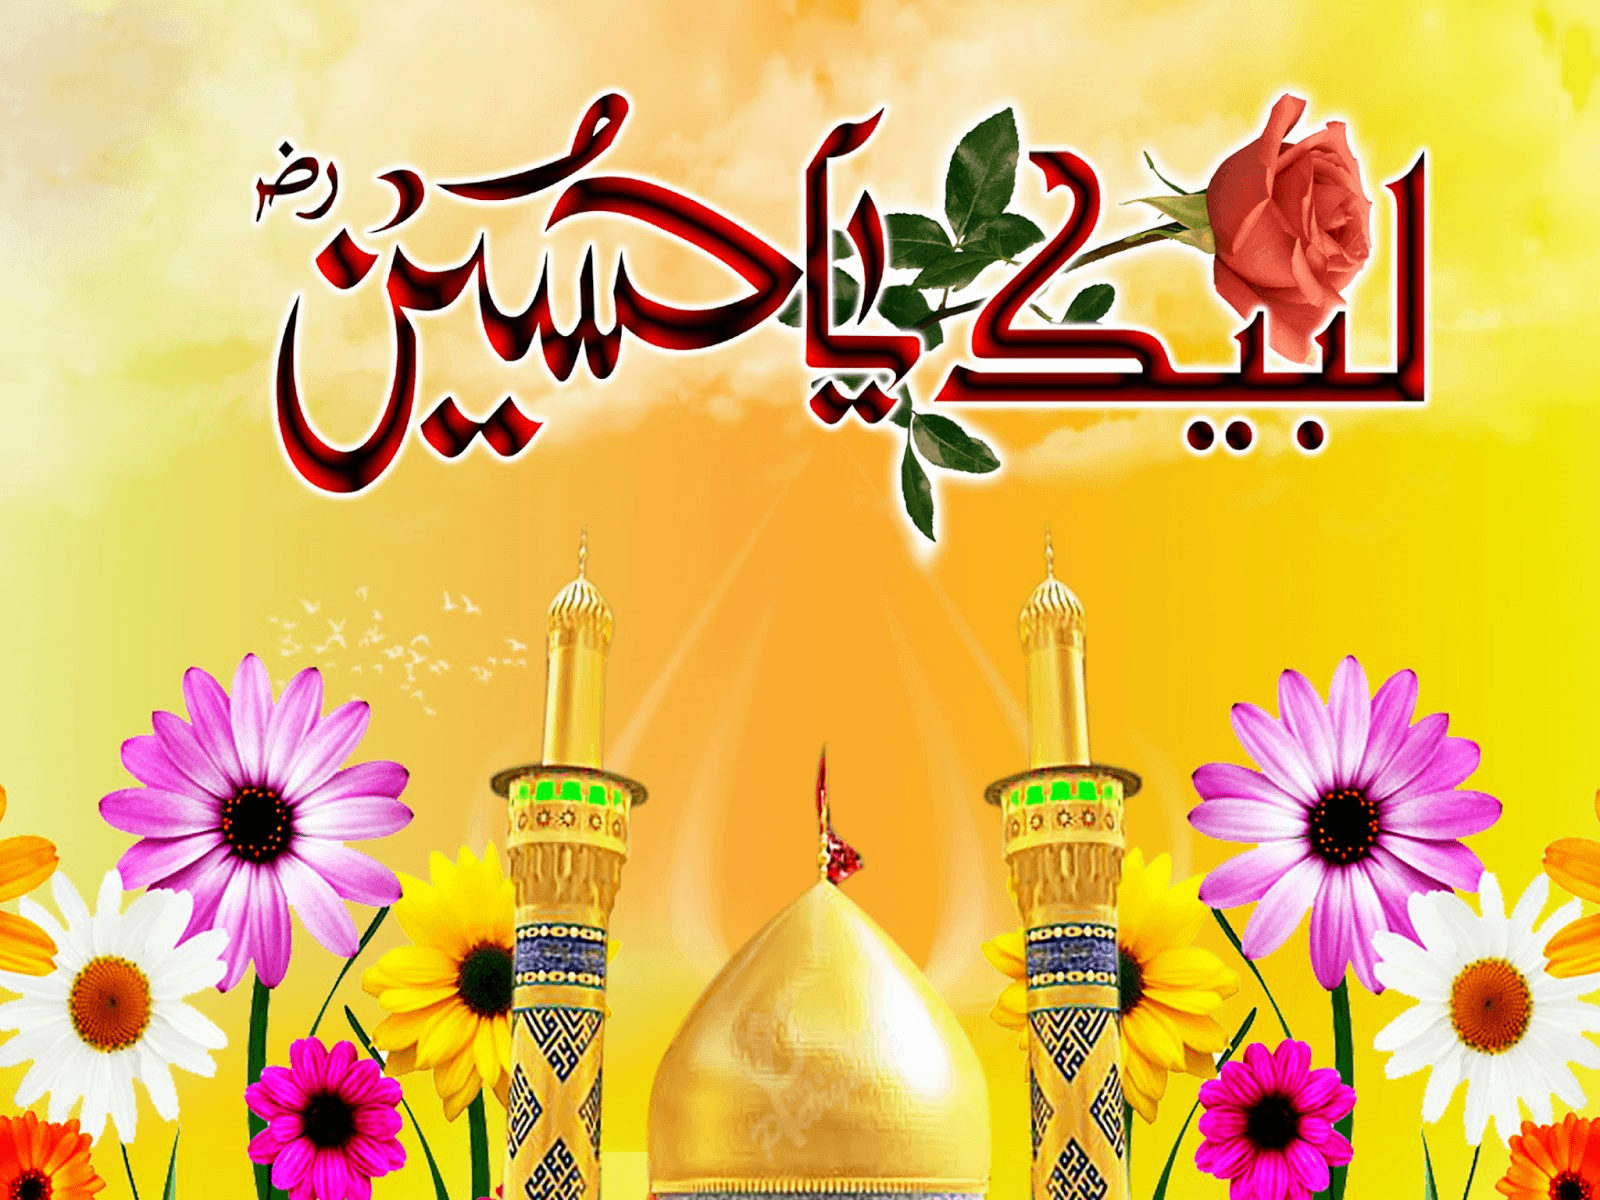 New Muharram 2016 Wallpaper Wallpapers Pinterest Muharram